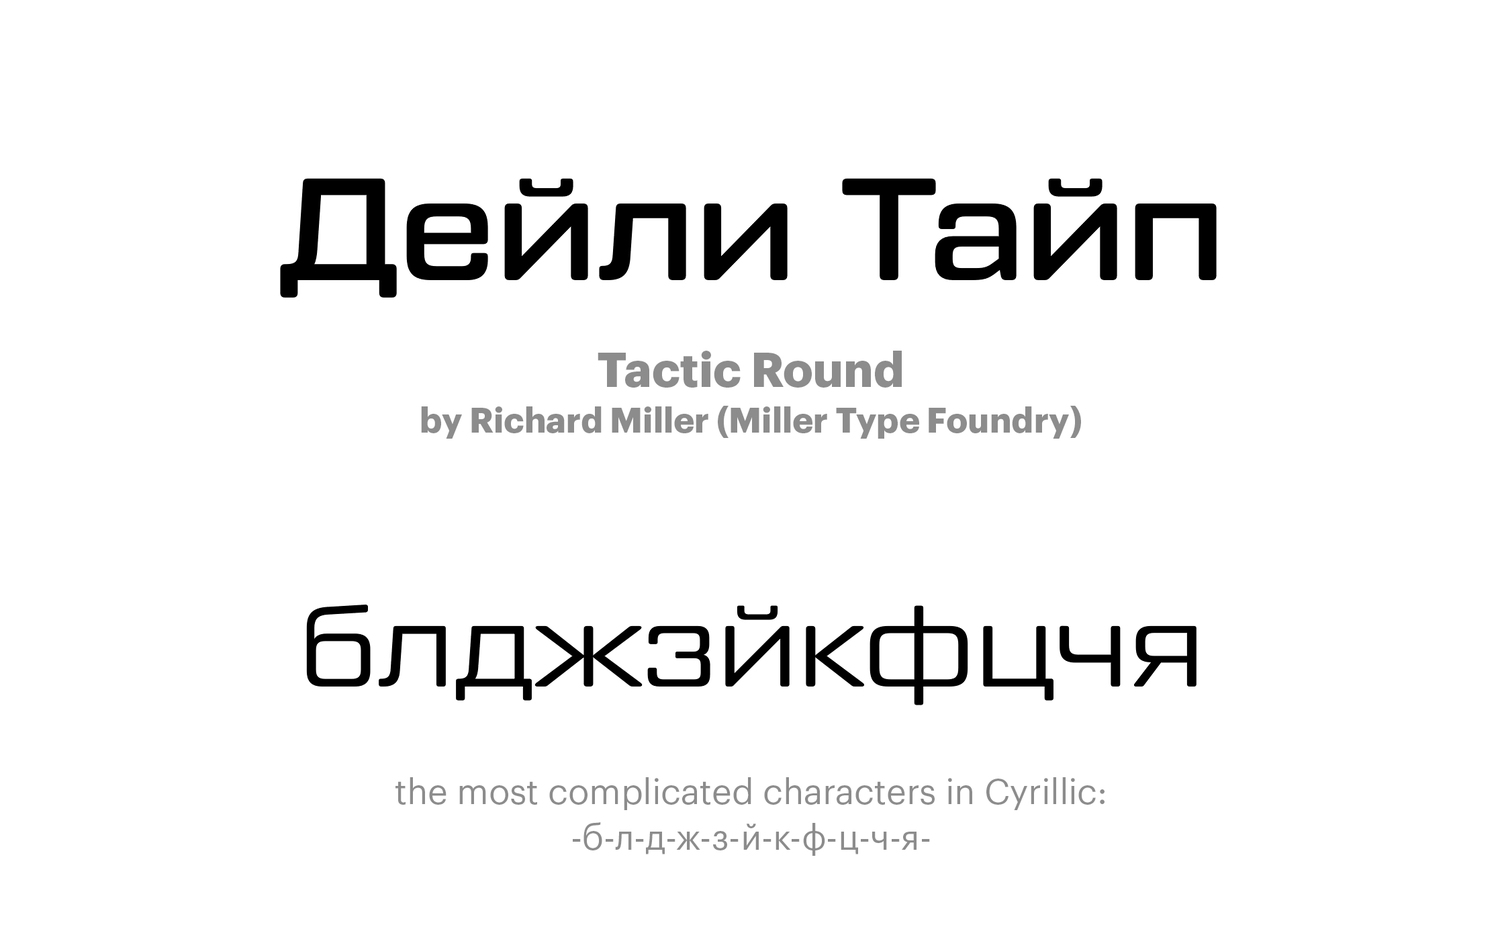 Tactic-Round-by-Richard-Miller-(Miller-Type-Foundry)